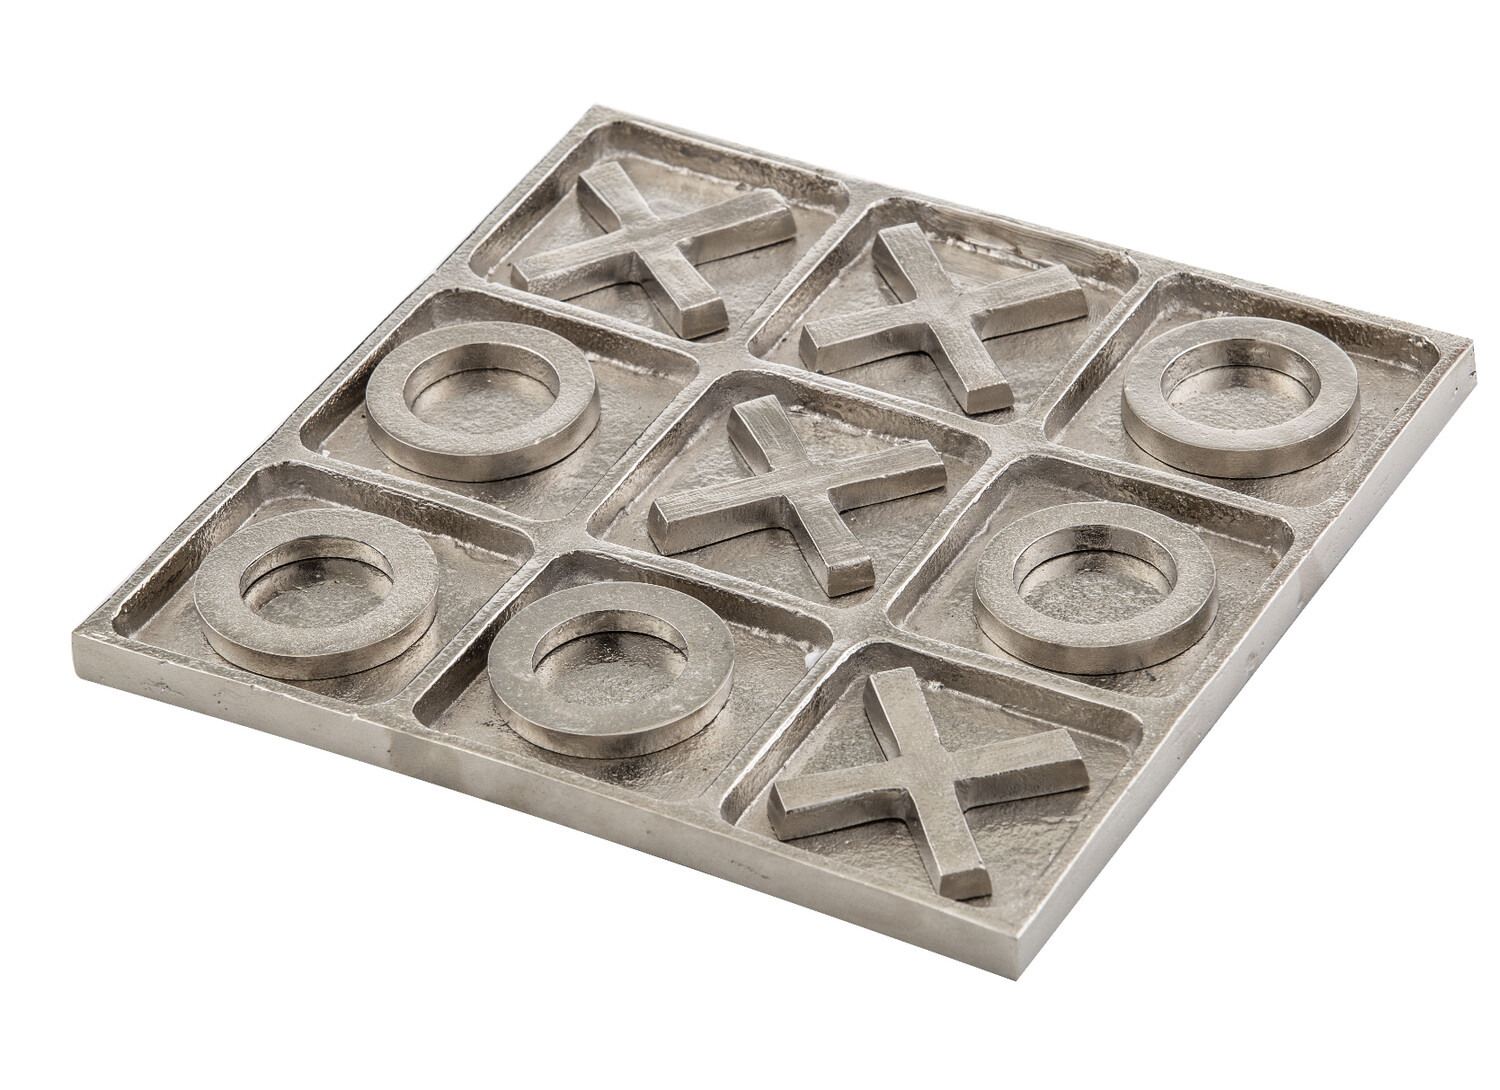 NOUGHTS & CROSSES GAME - METAL